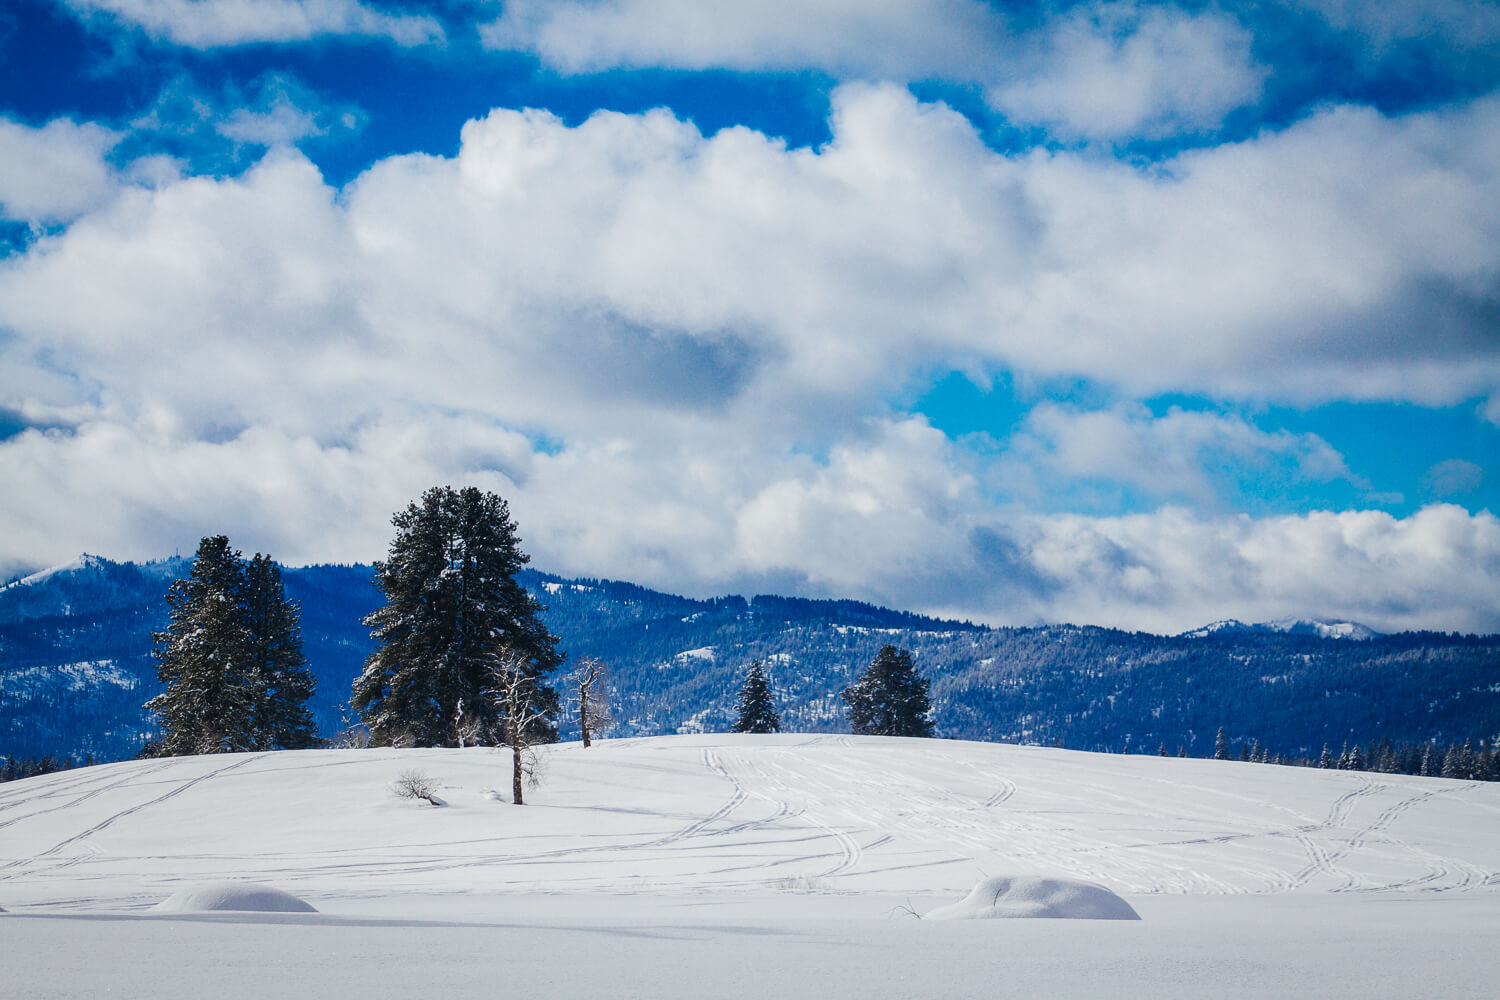 A mountainous landscape in the winter.